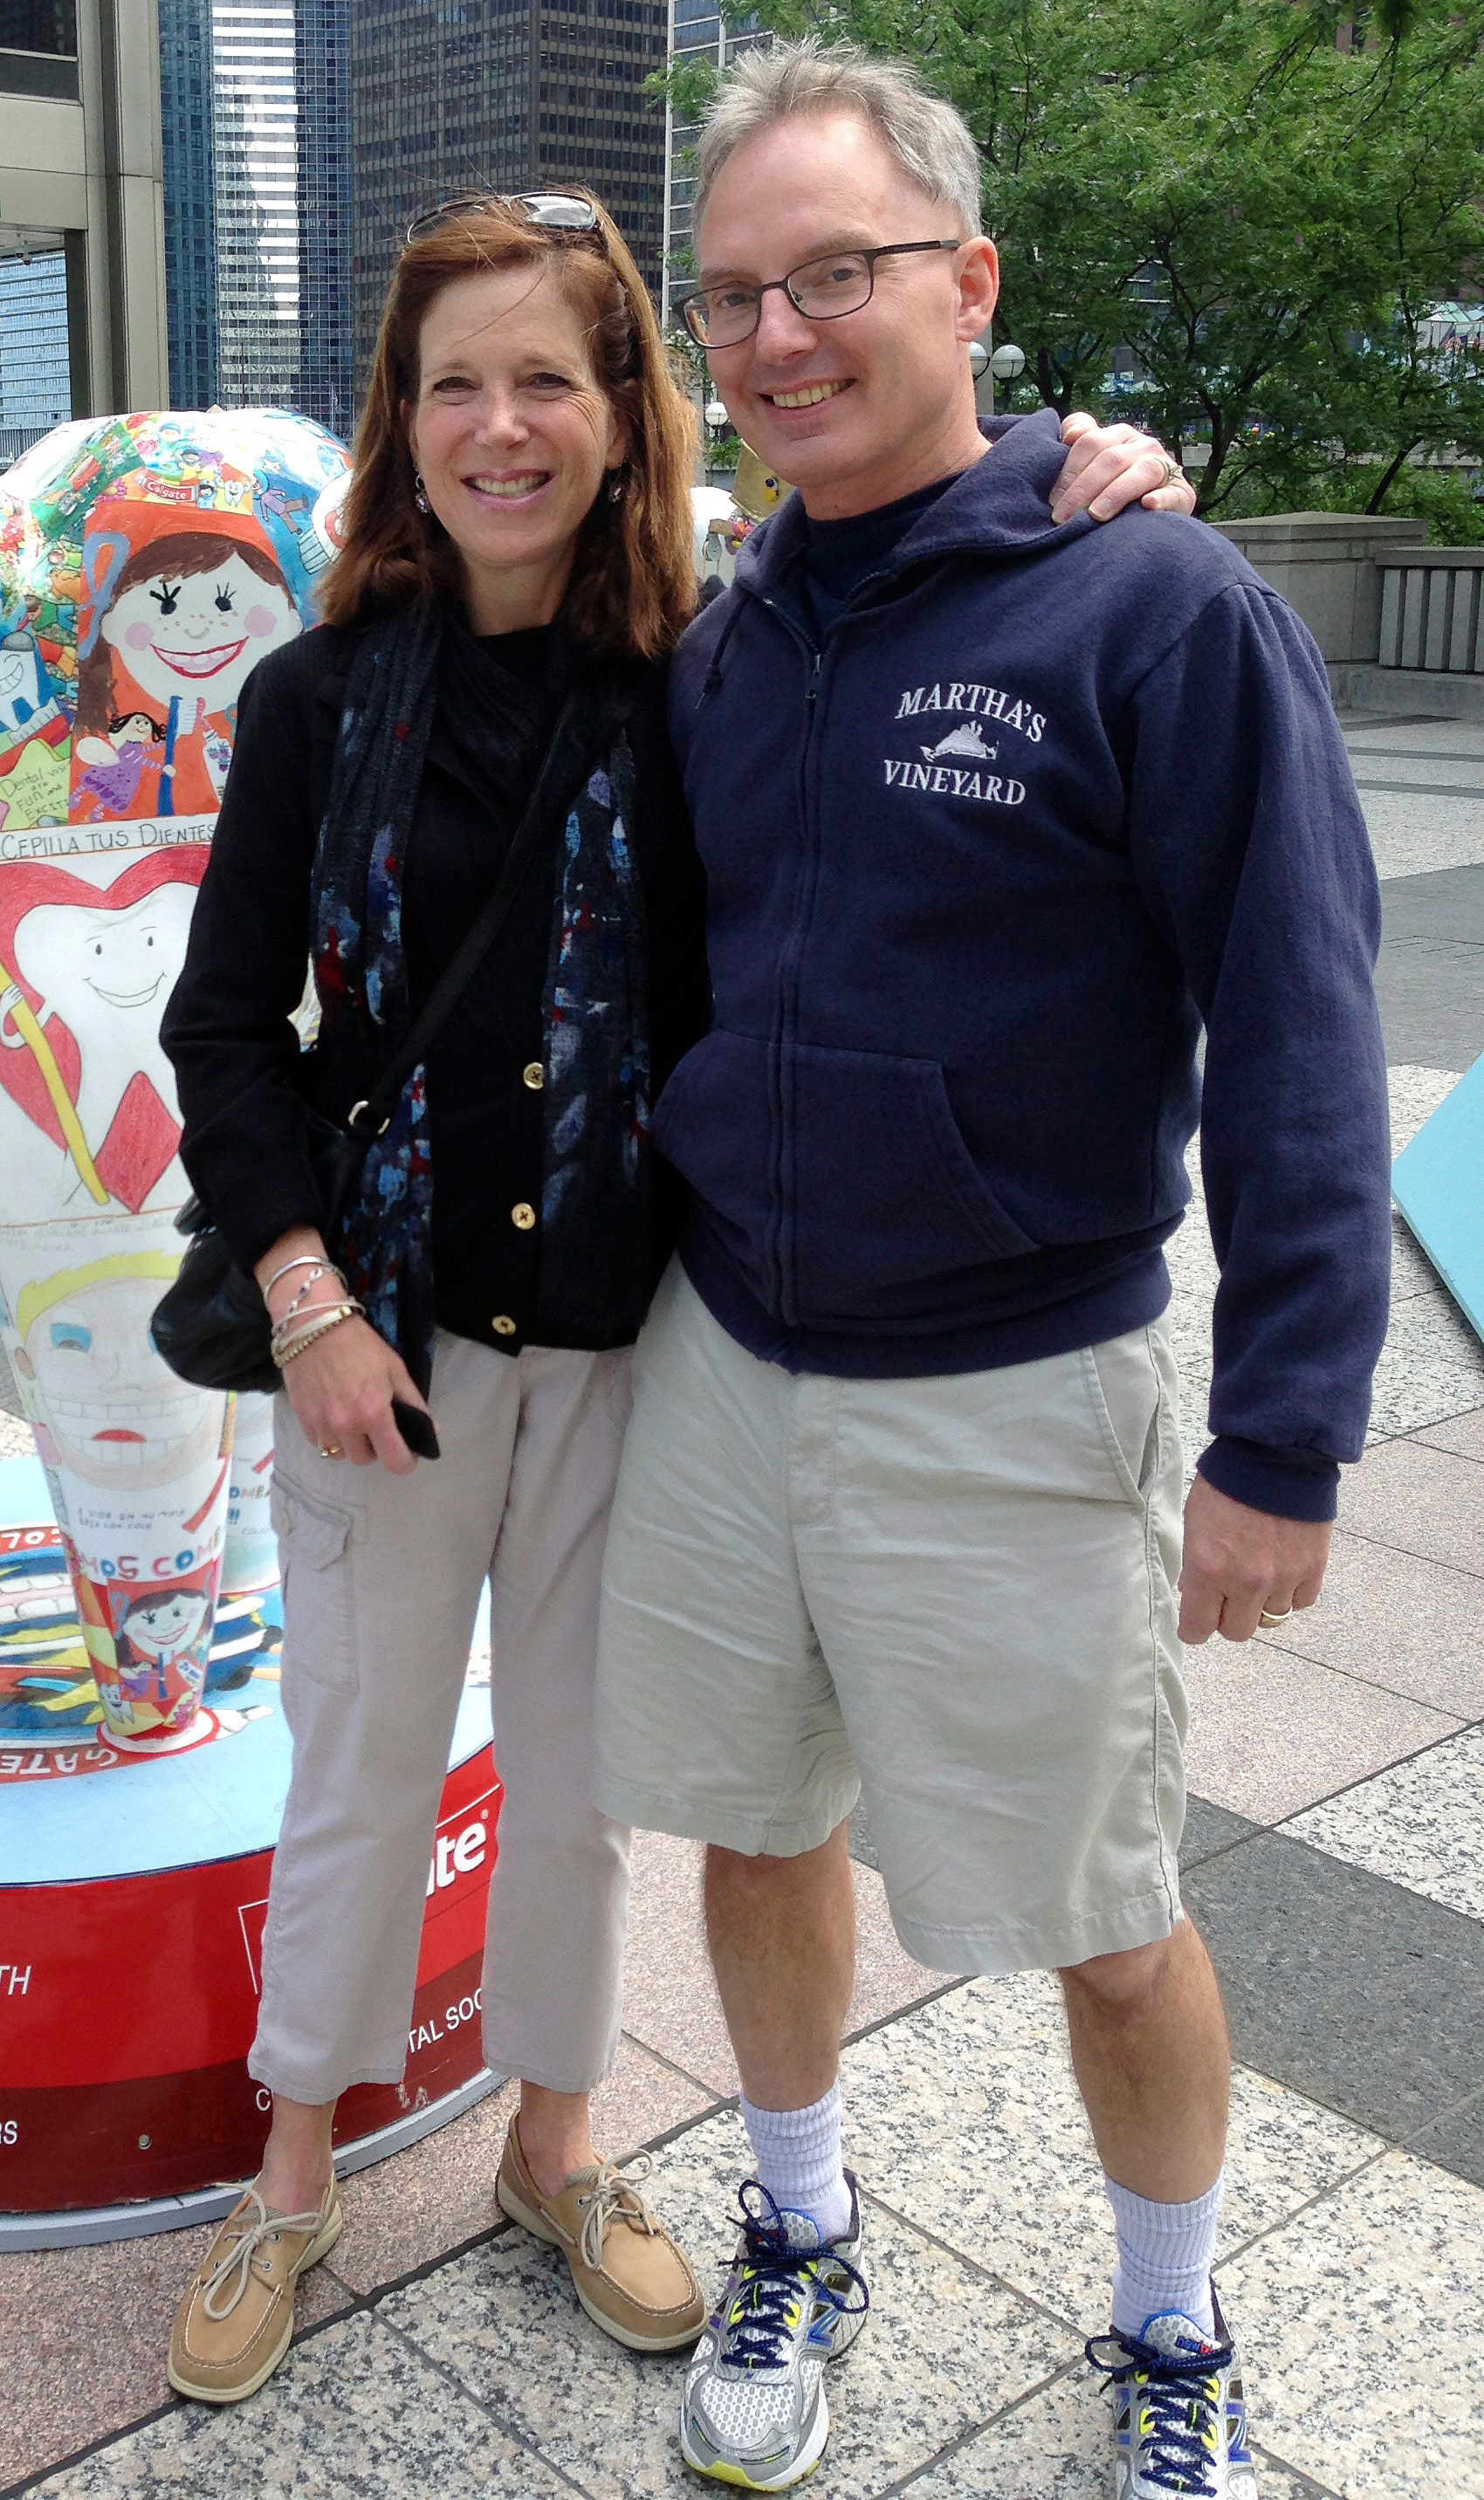 In this July 2014 photo provided by Karen Friend, Friend, left, stands with her husband, Jacob Vinton, on Michigan Avenue in Chicago. Friend, a professor at Brown University in Providence, R.I., took four weeks off in 2014 after her 59-year-old husband, who has early-onset Alzheimers disease, was hospitalized with tremors. She used the time to make sure he was medically stable and hire help. (Courtesy of Karen Friend via AP)